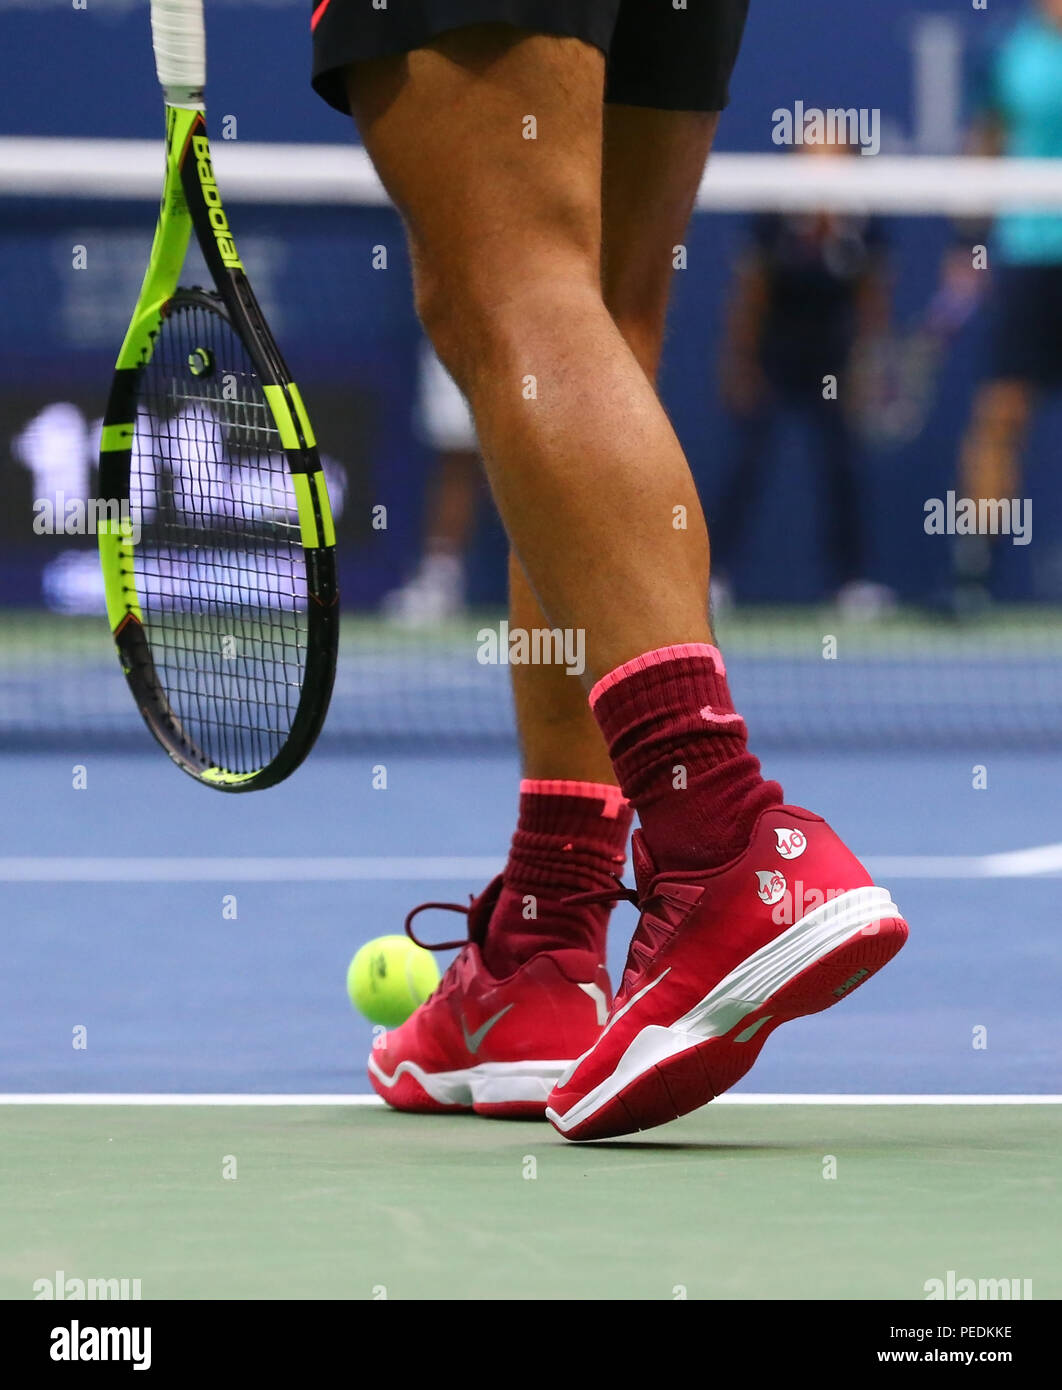 Grand Slam Champion Rafael Nadal Of Spain Wears Custom Nike Tennis Shoes During Us Open 2017 Final Match Stock Photo Alamy